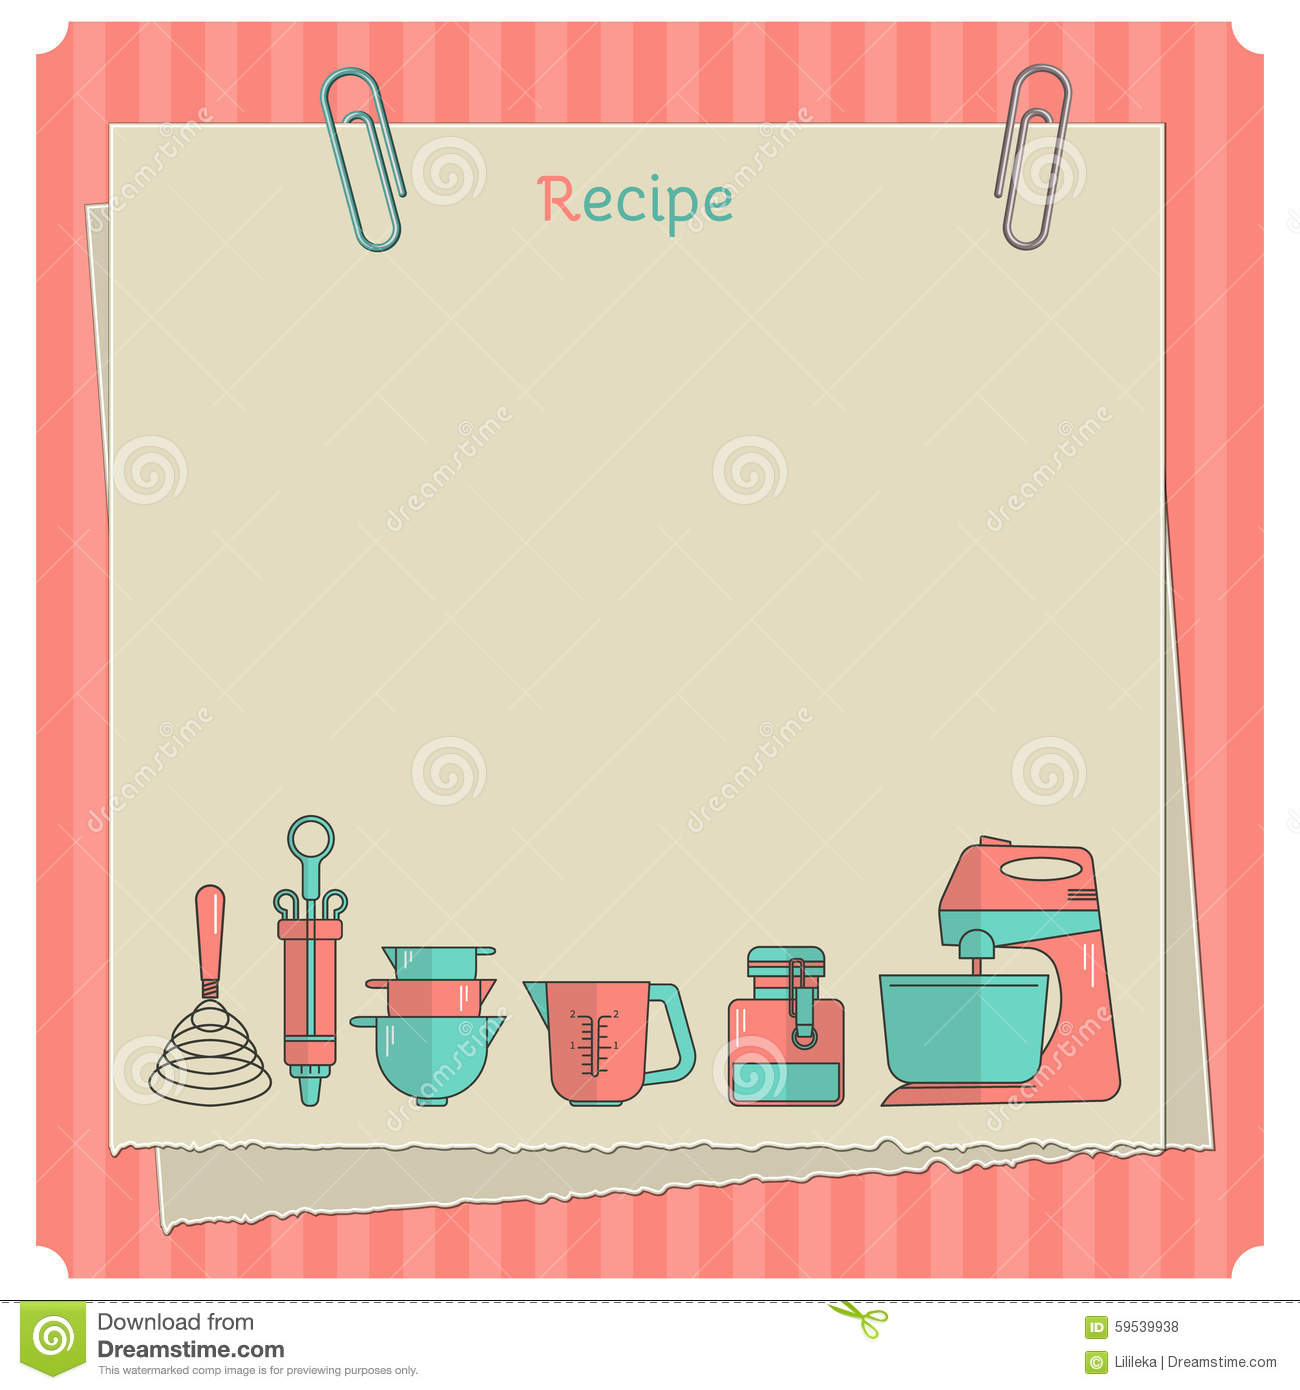 recipe card kitchen note template stock illustration illustration of cartoon bowl 59539938. Black Bedroom Furniture Sets. Home Design Ideas